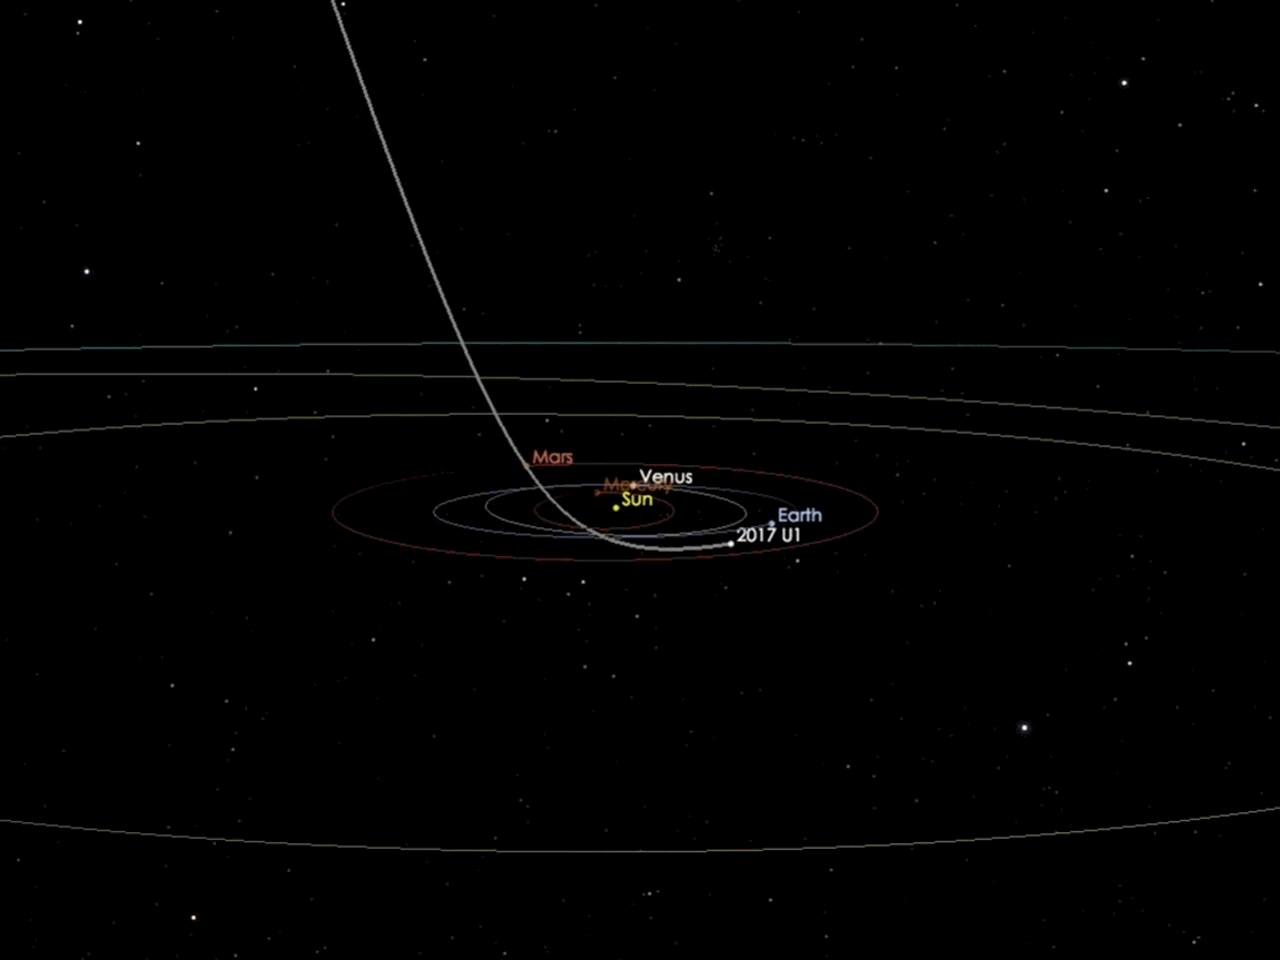 Expected path of the mysterious object